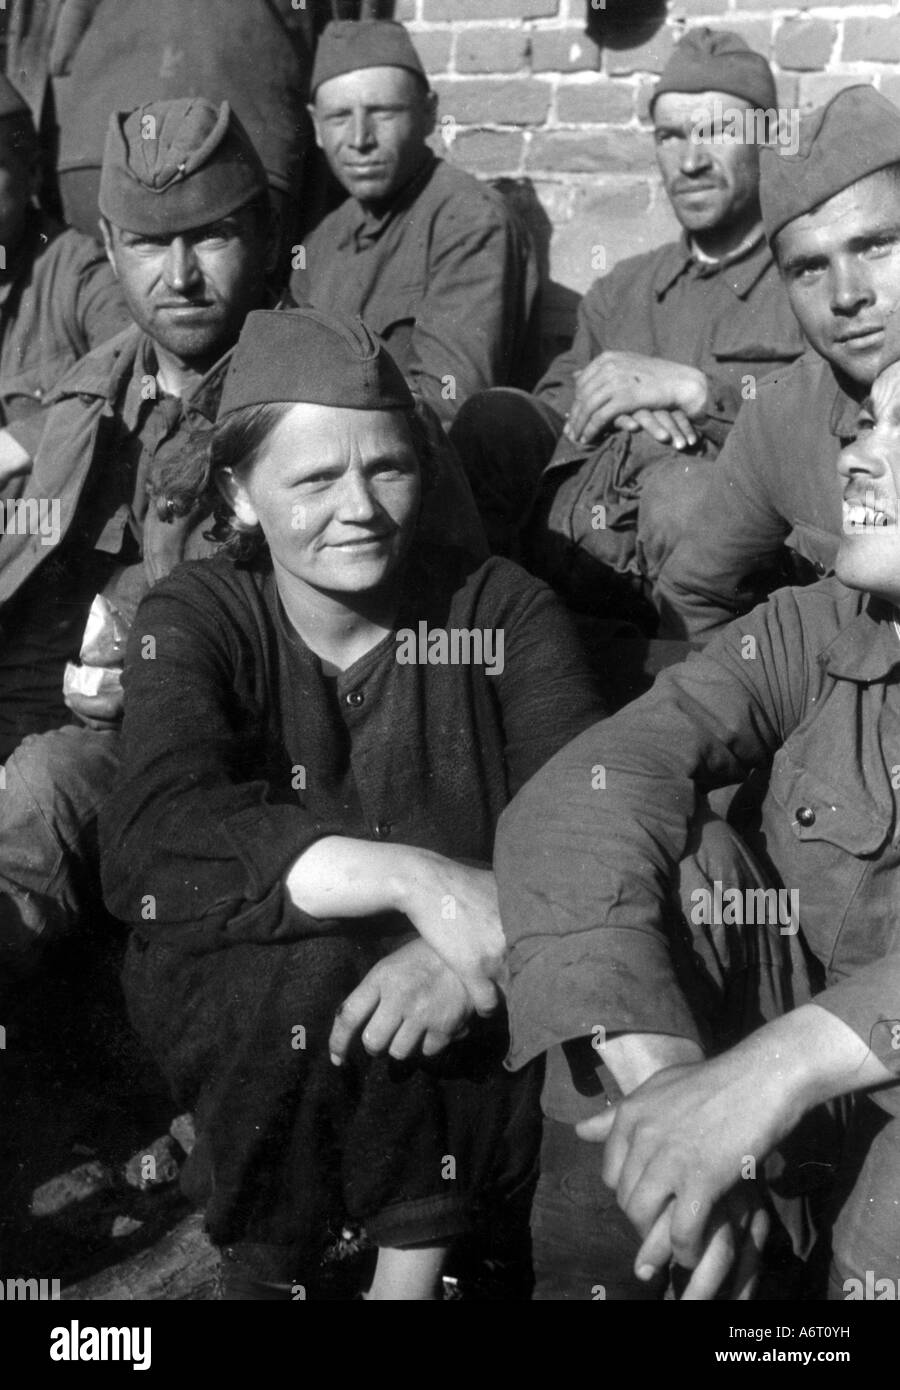 events, Second World War / WWII, prisoners of war, Russia, captured Soviet soldiers, among them a woman, 1941, Additional - Stock Image